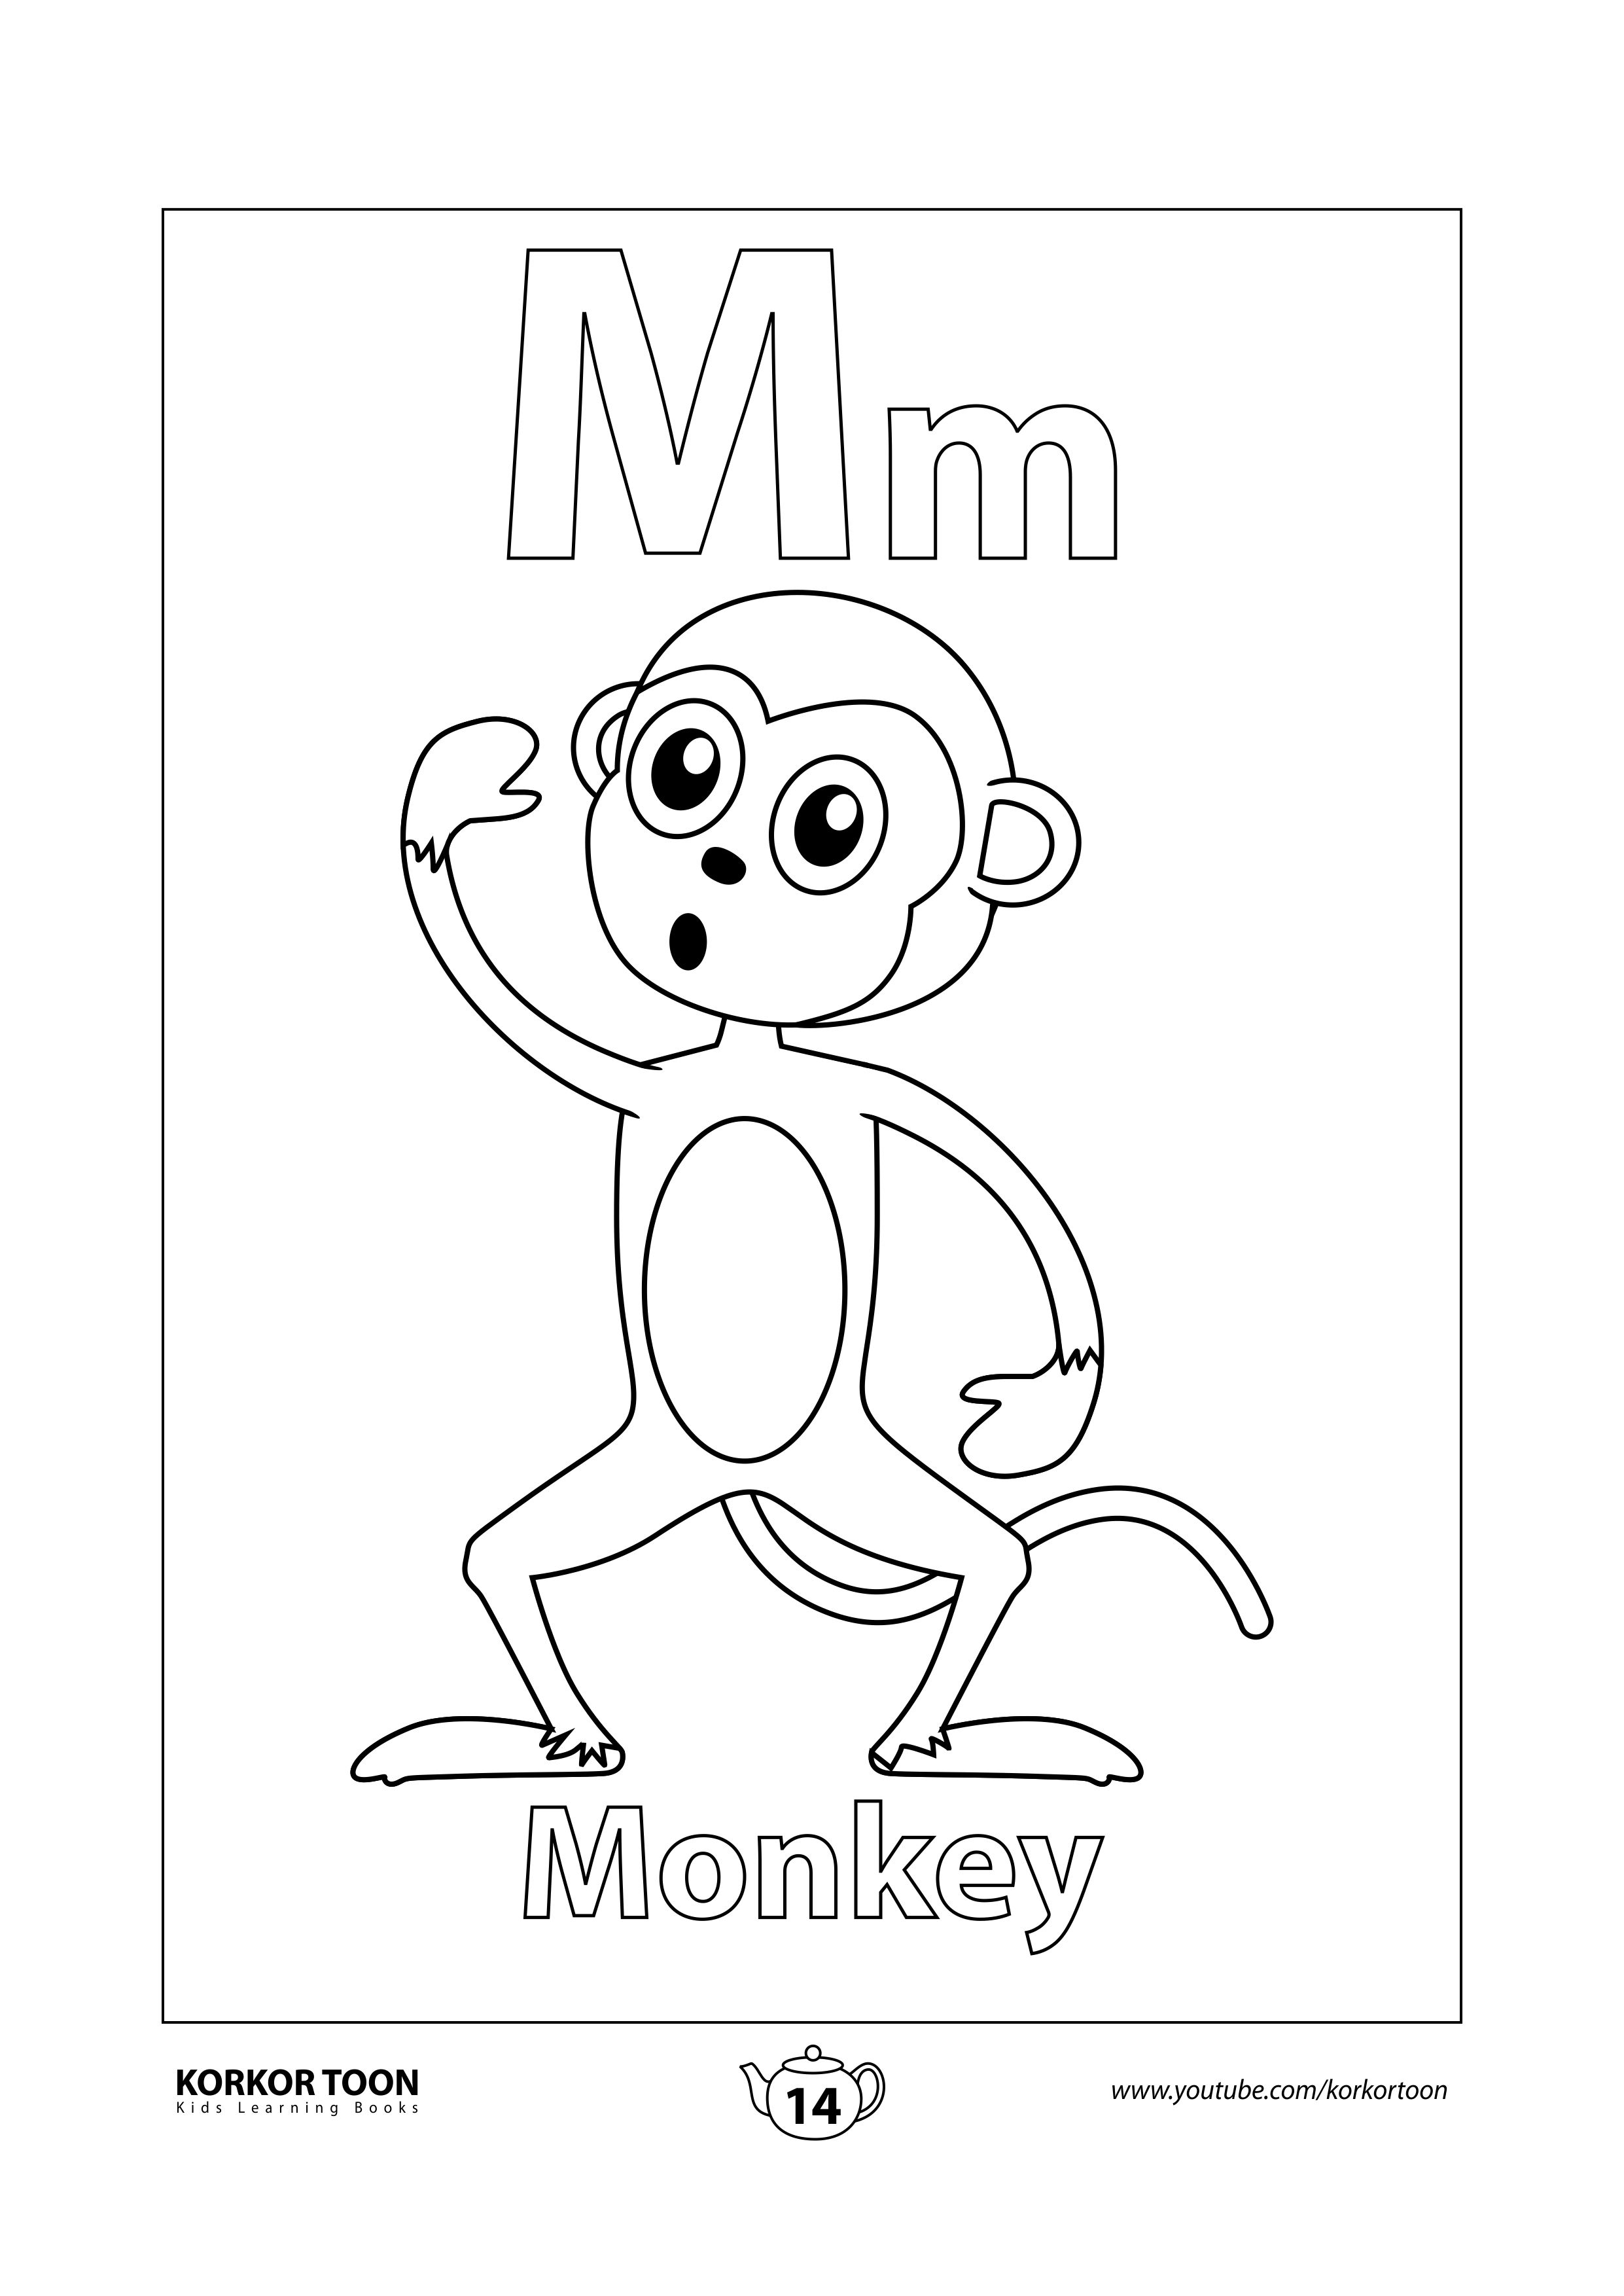 Monkey Coloring Page Abc Coloring Book [ 3508 x 2482 Pixel ]